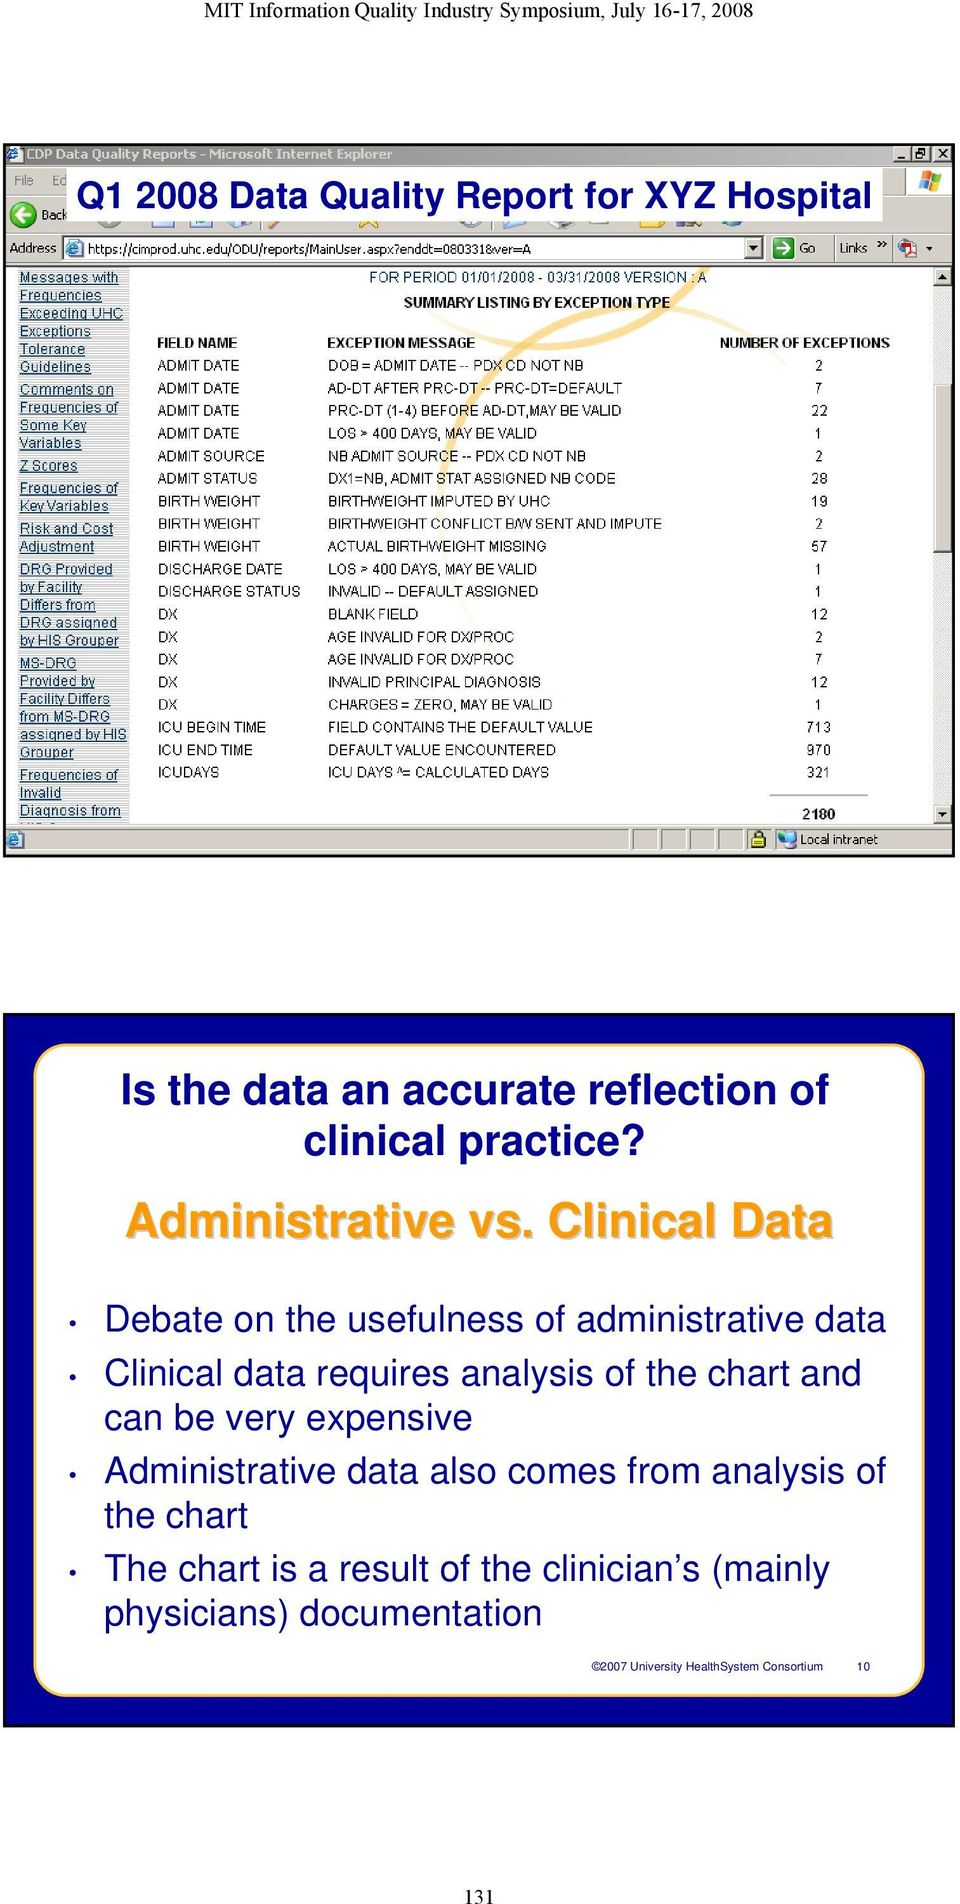 Clinical Data Debate on the usefulness of administrative data Clinical data requires analysis of the chart and can be